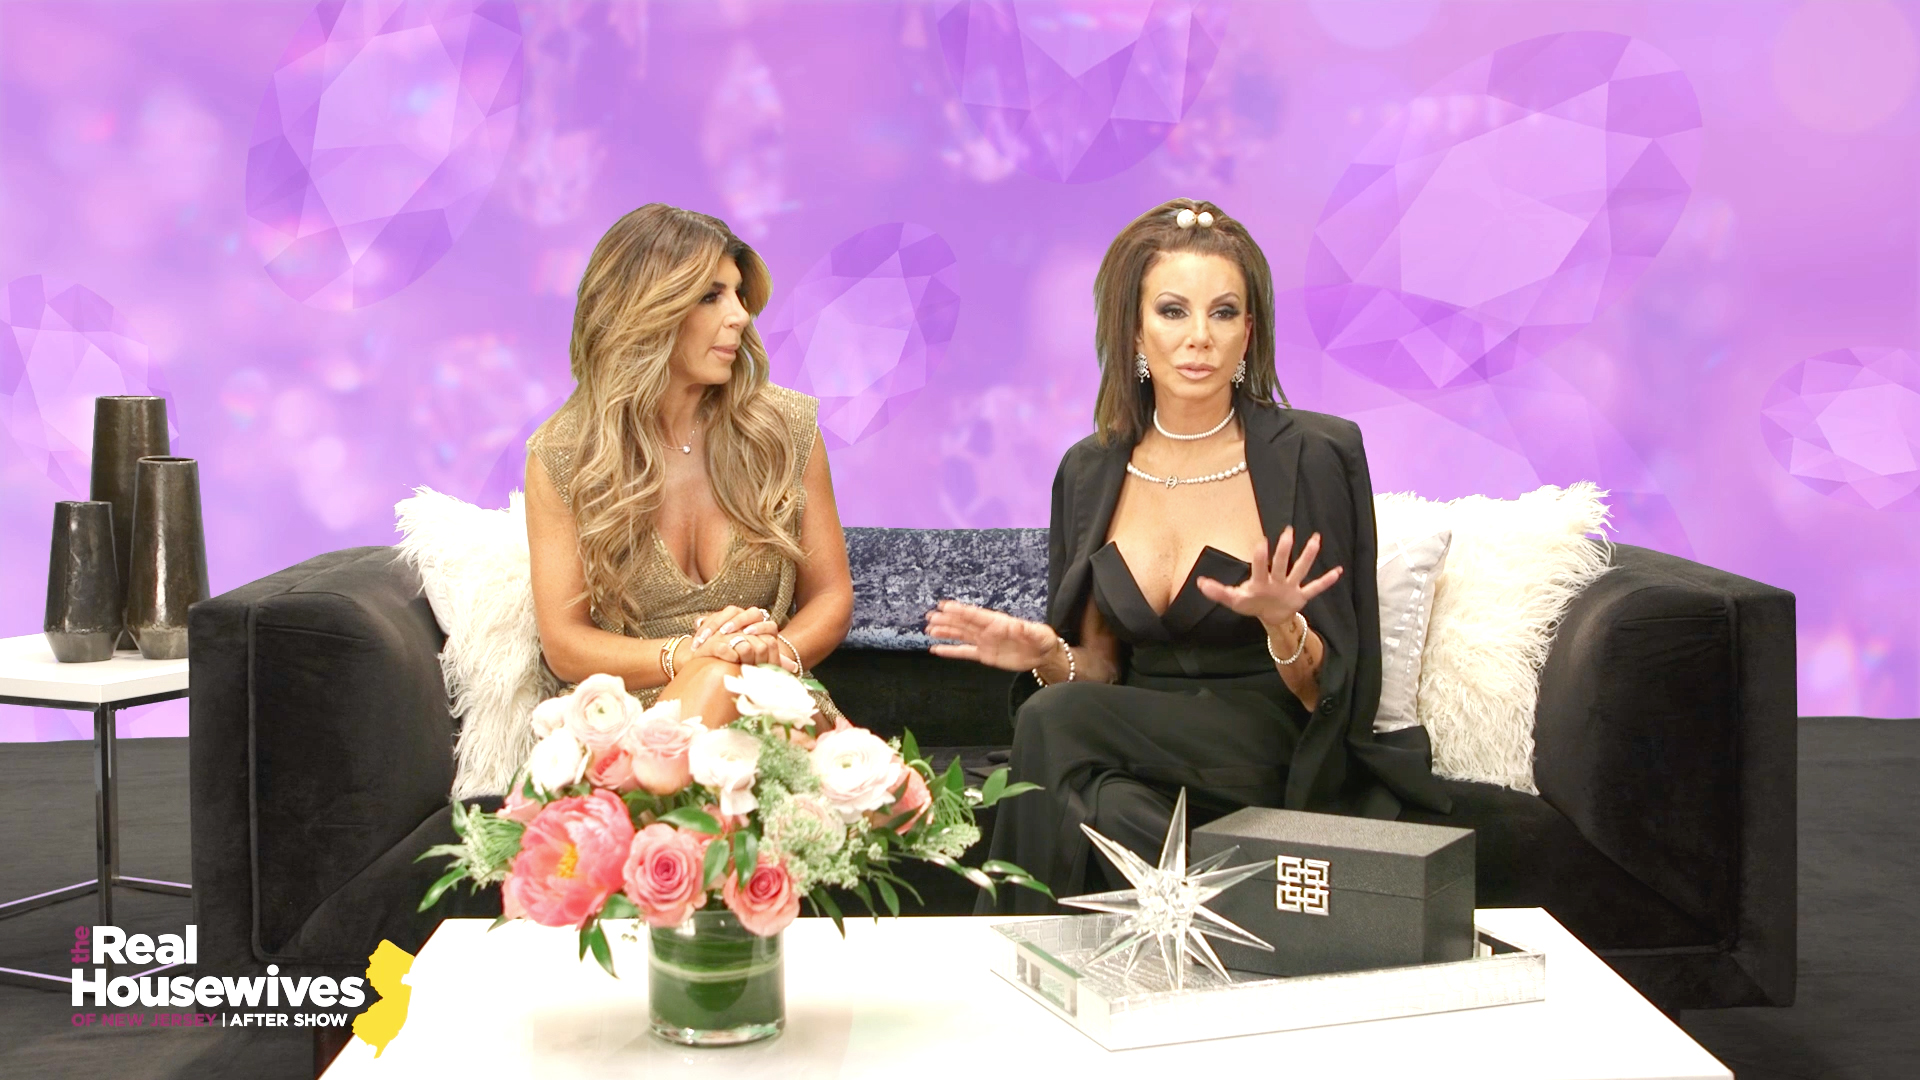 The RHONJ Ladies Accuse Danielle Staub of Twisting Their Words ... But What Can They Do?